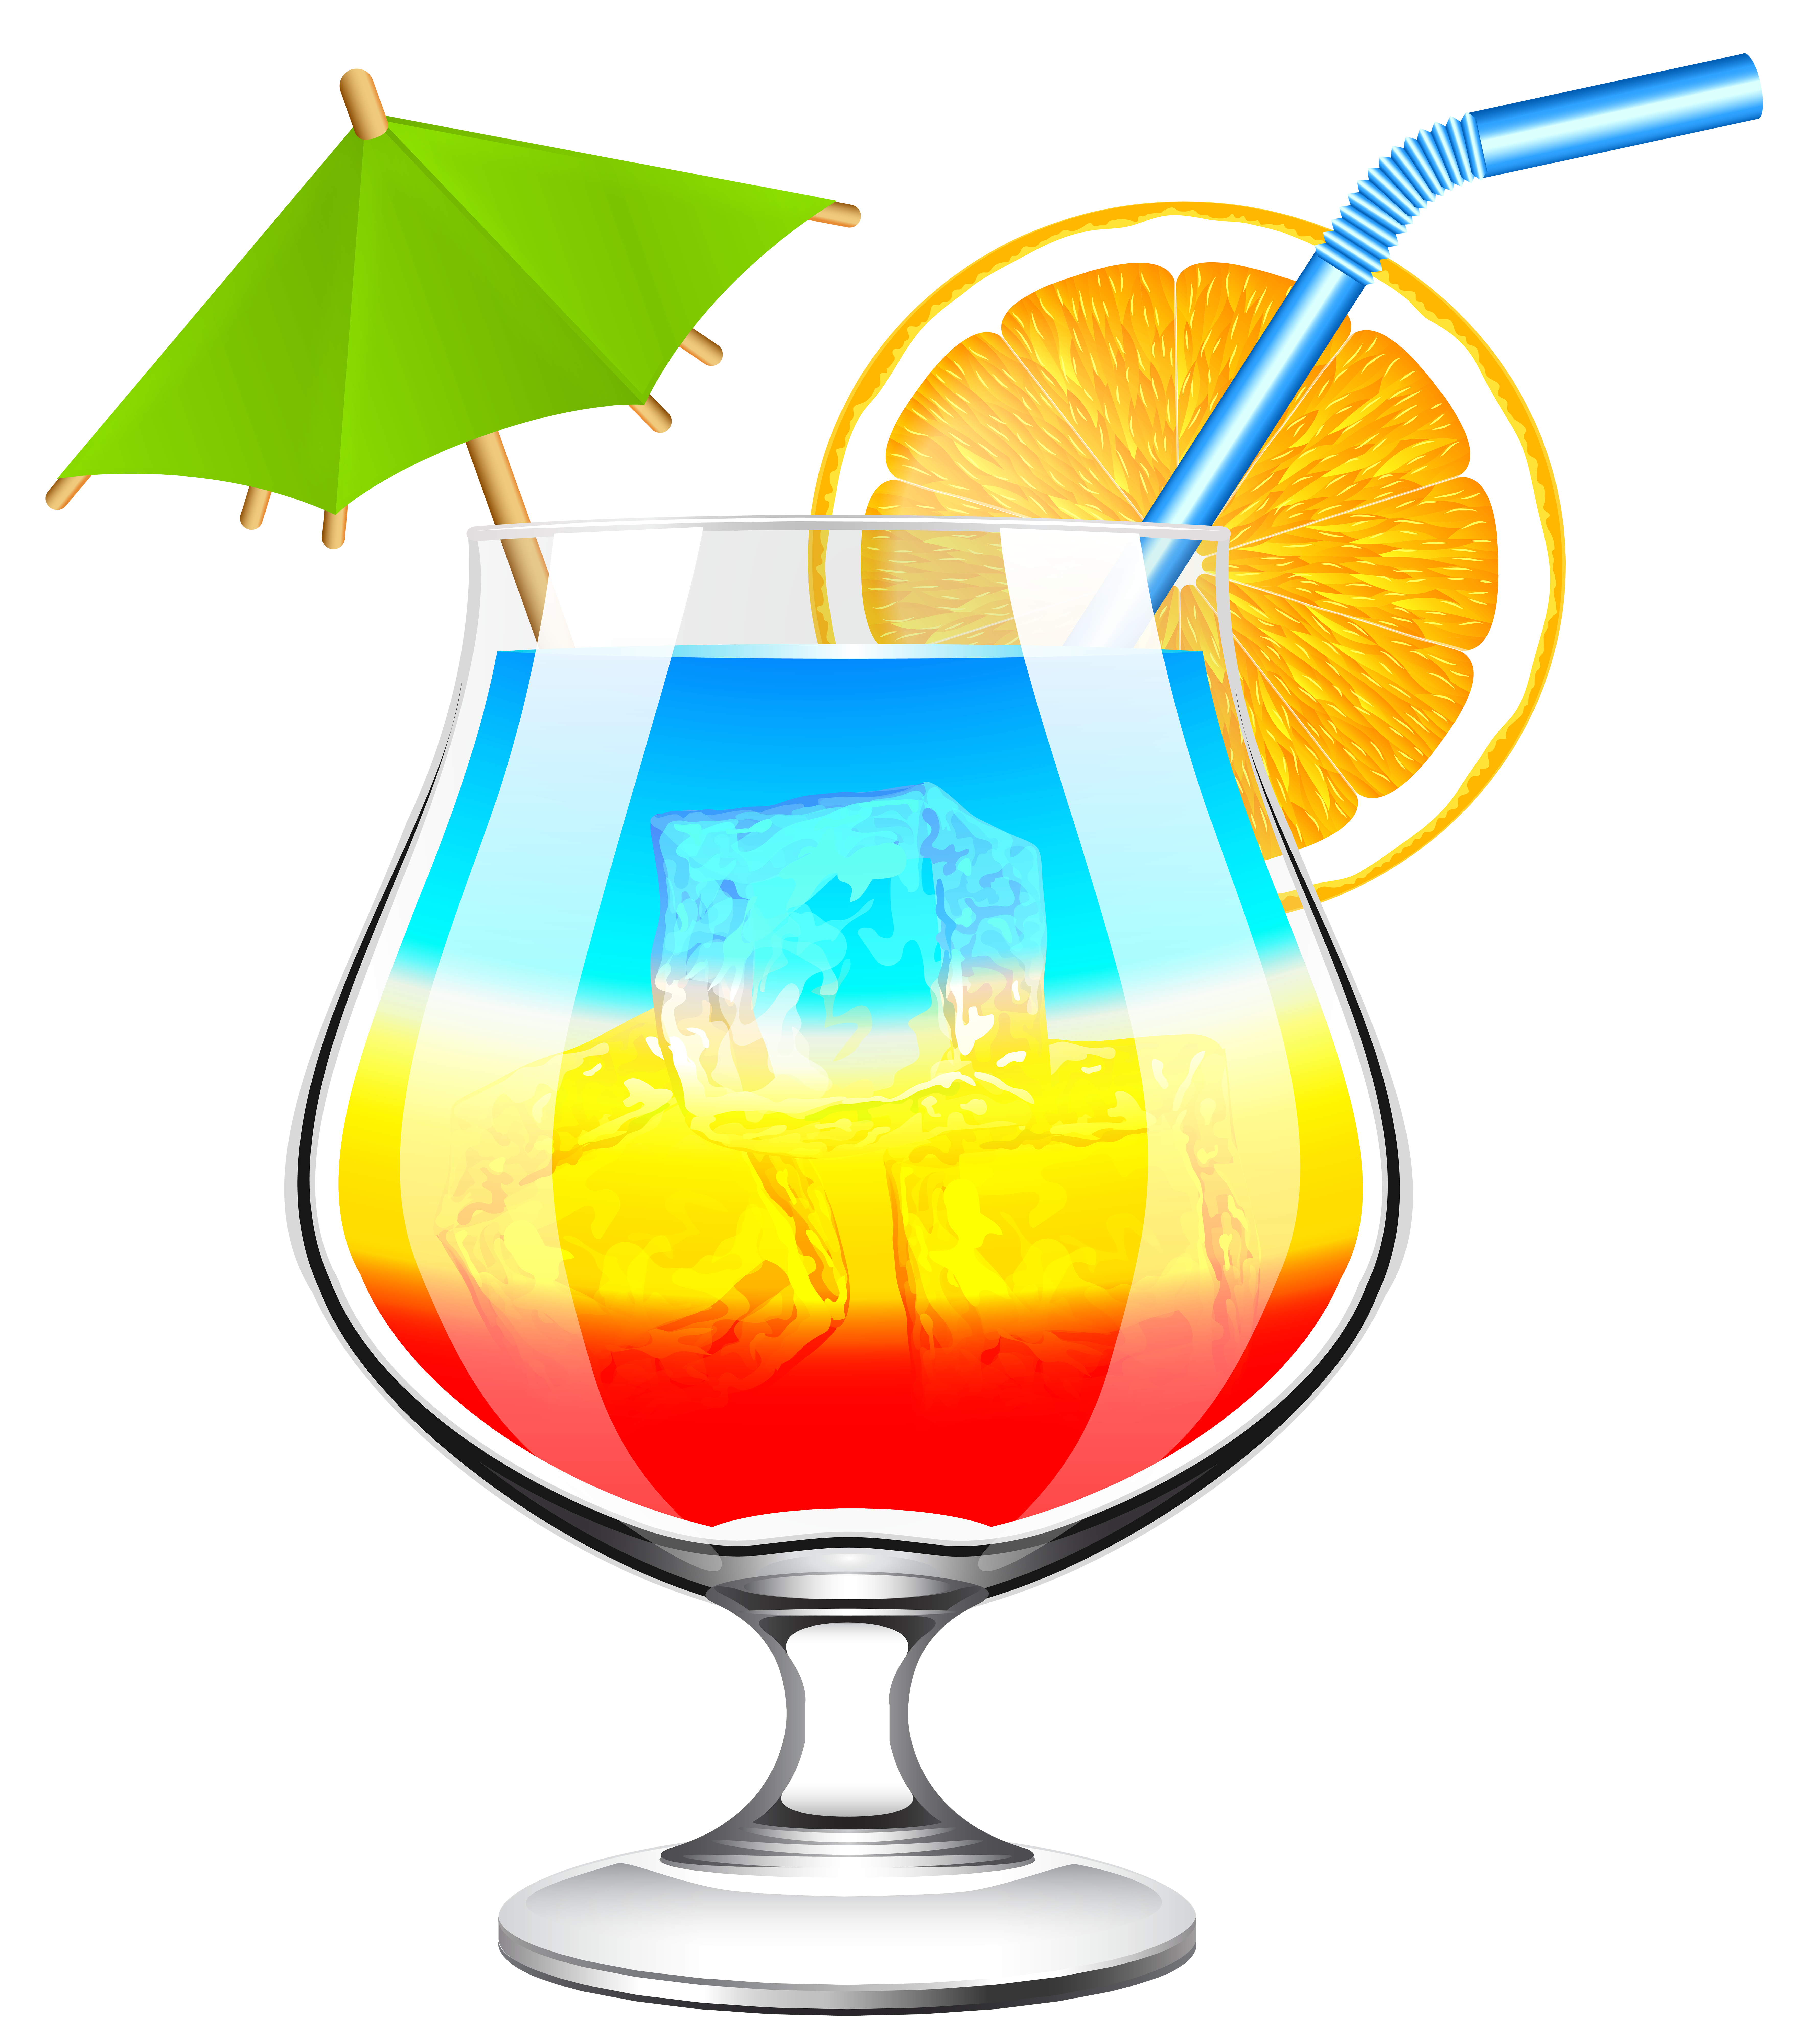 Christmas cocktails clipart image black and white download Summer Cocktail Transparent PNG Clip Art Image | Gallery ... image black and white download